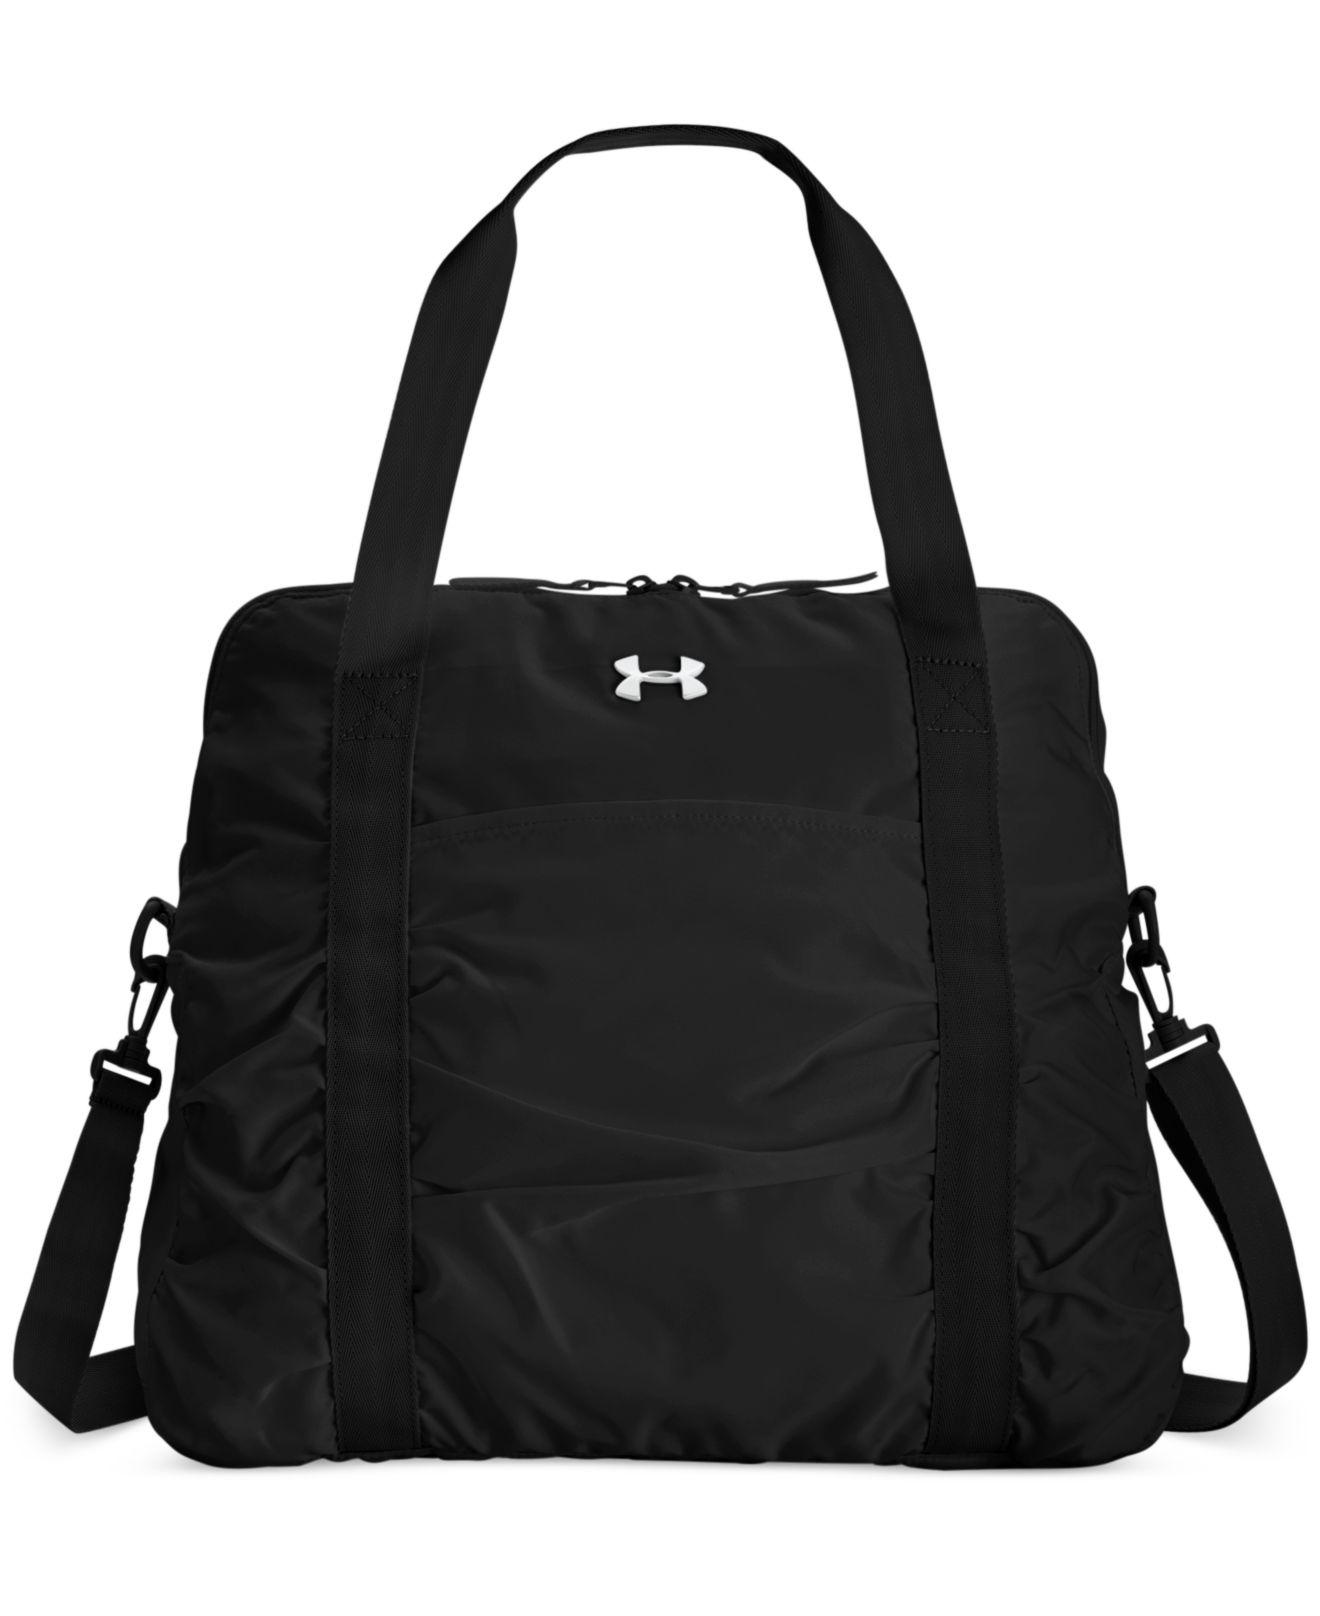 Under Armour The Works Tote Bag In Black Lyst